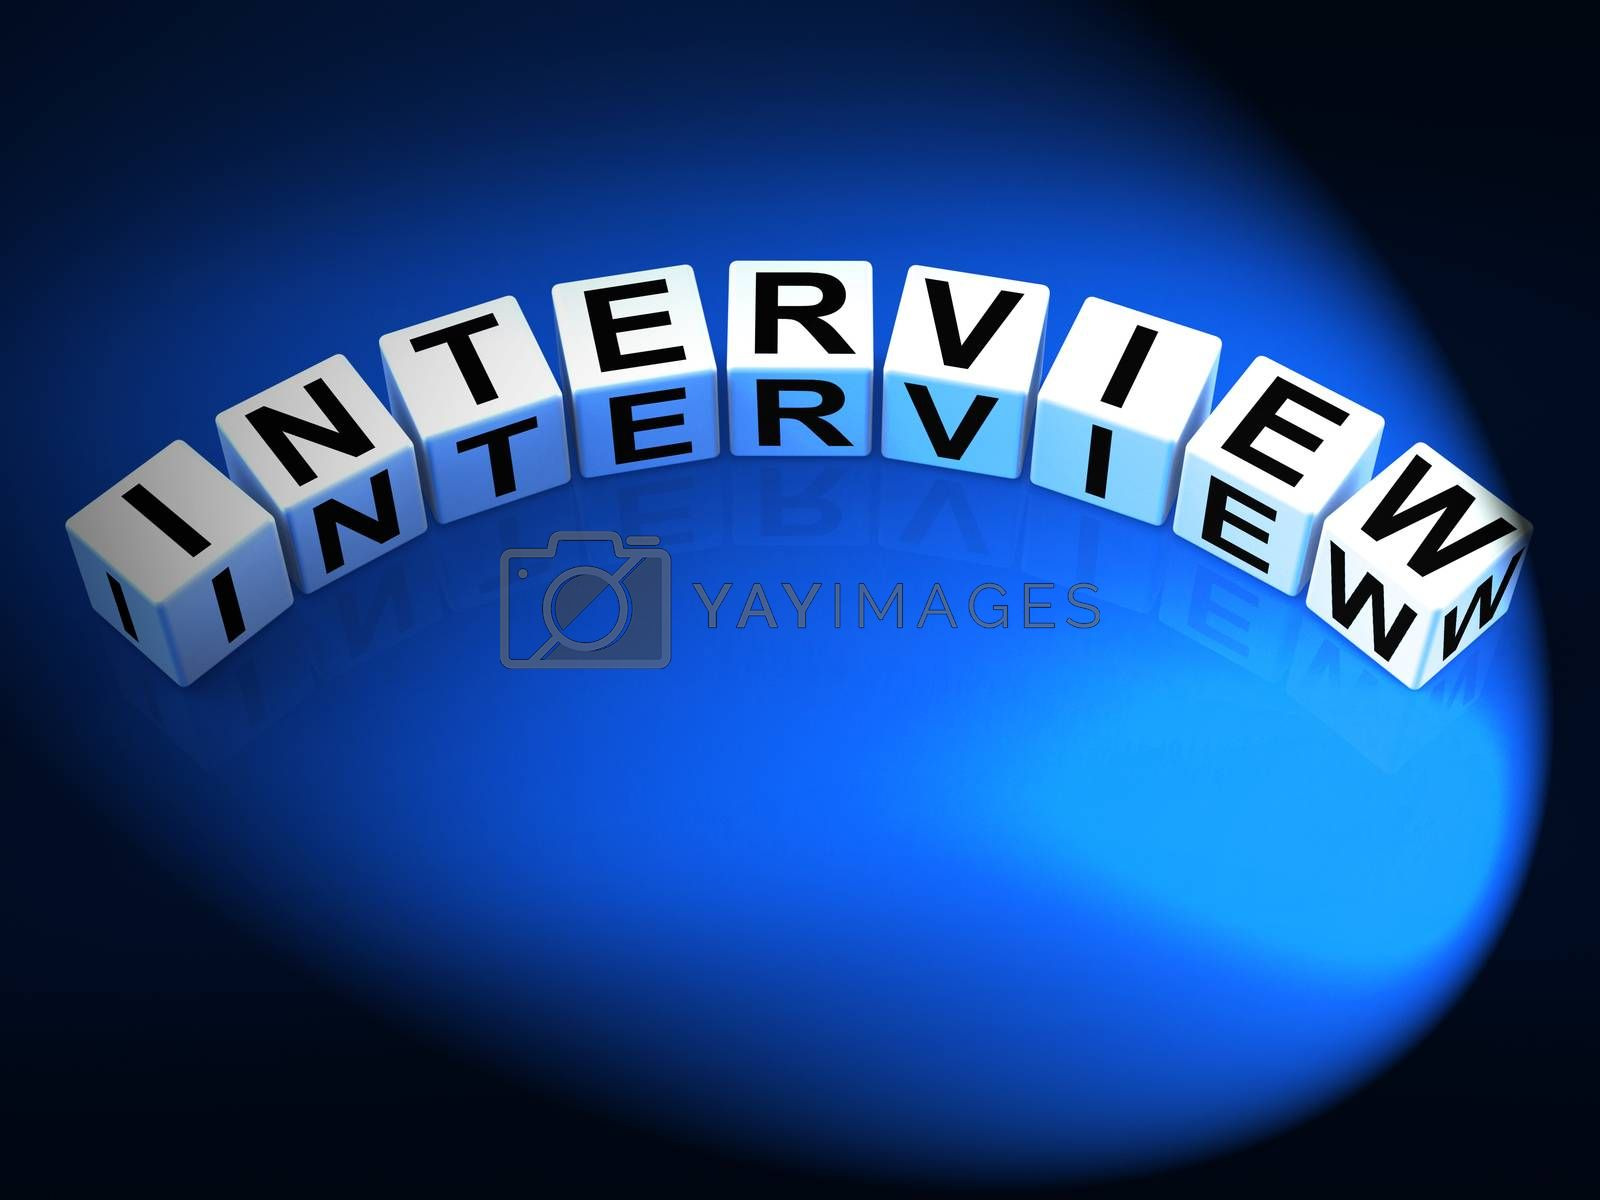 Interview Dice Mean Conversation or Dialogue When Interviewing by stuartmiles